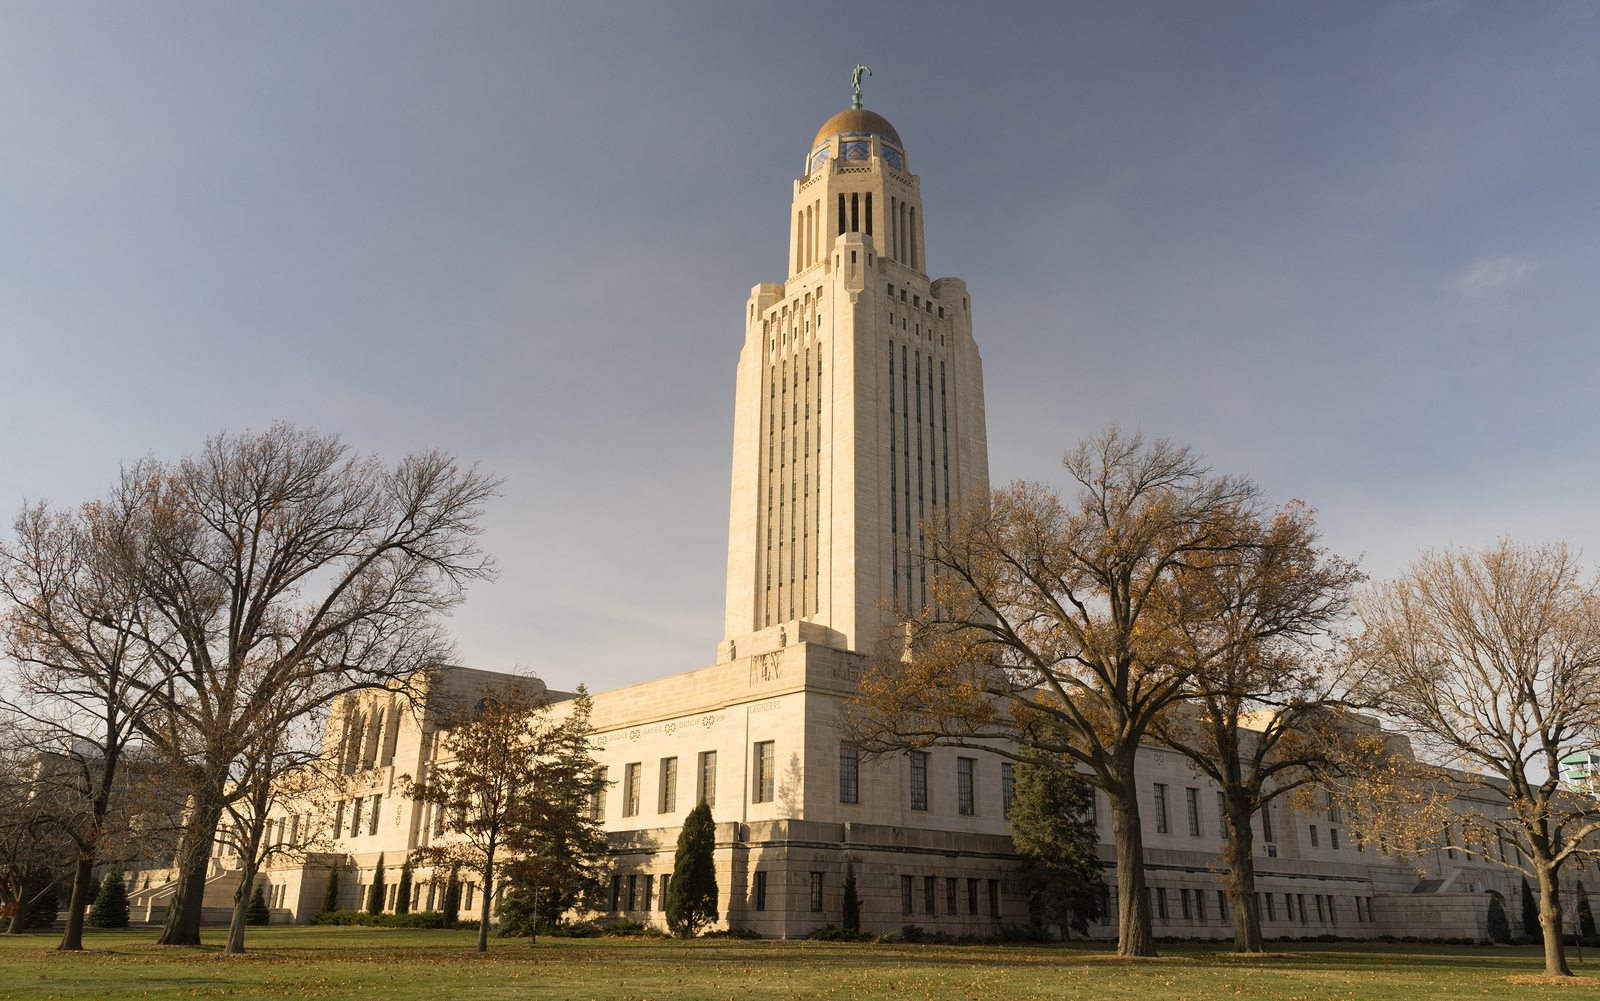 Nebraska Governor Ricketts Signs Tax Relief for Nebraskans on National Tax Day